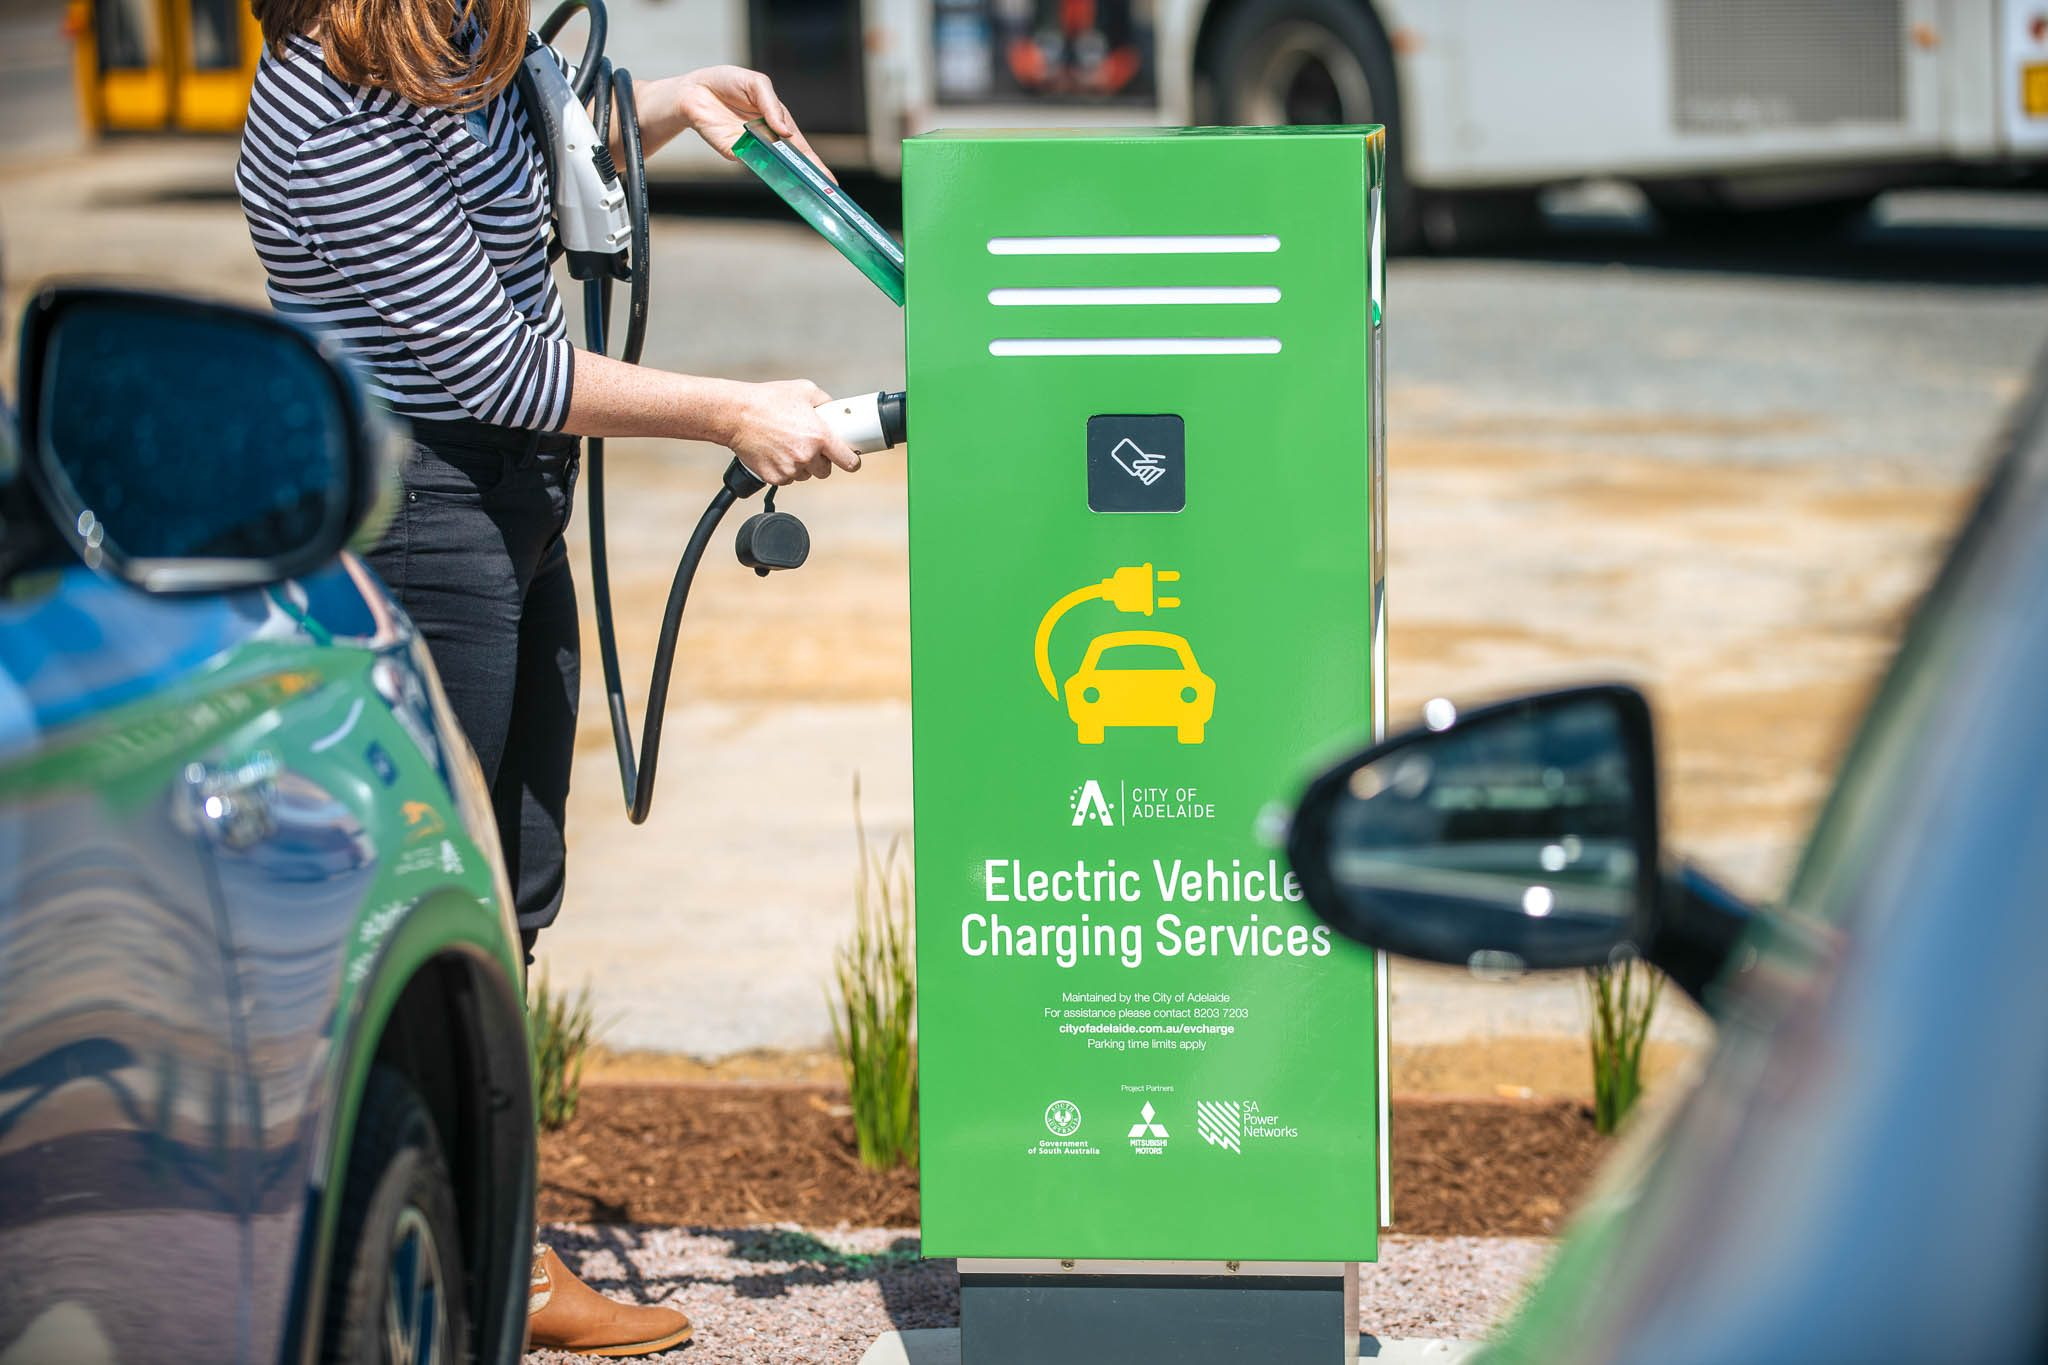 Electric Vehicles City Of Adelaide,Pictures For Bathroom Walls